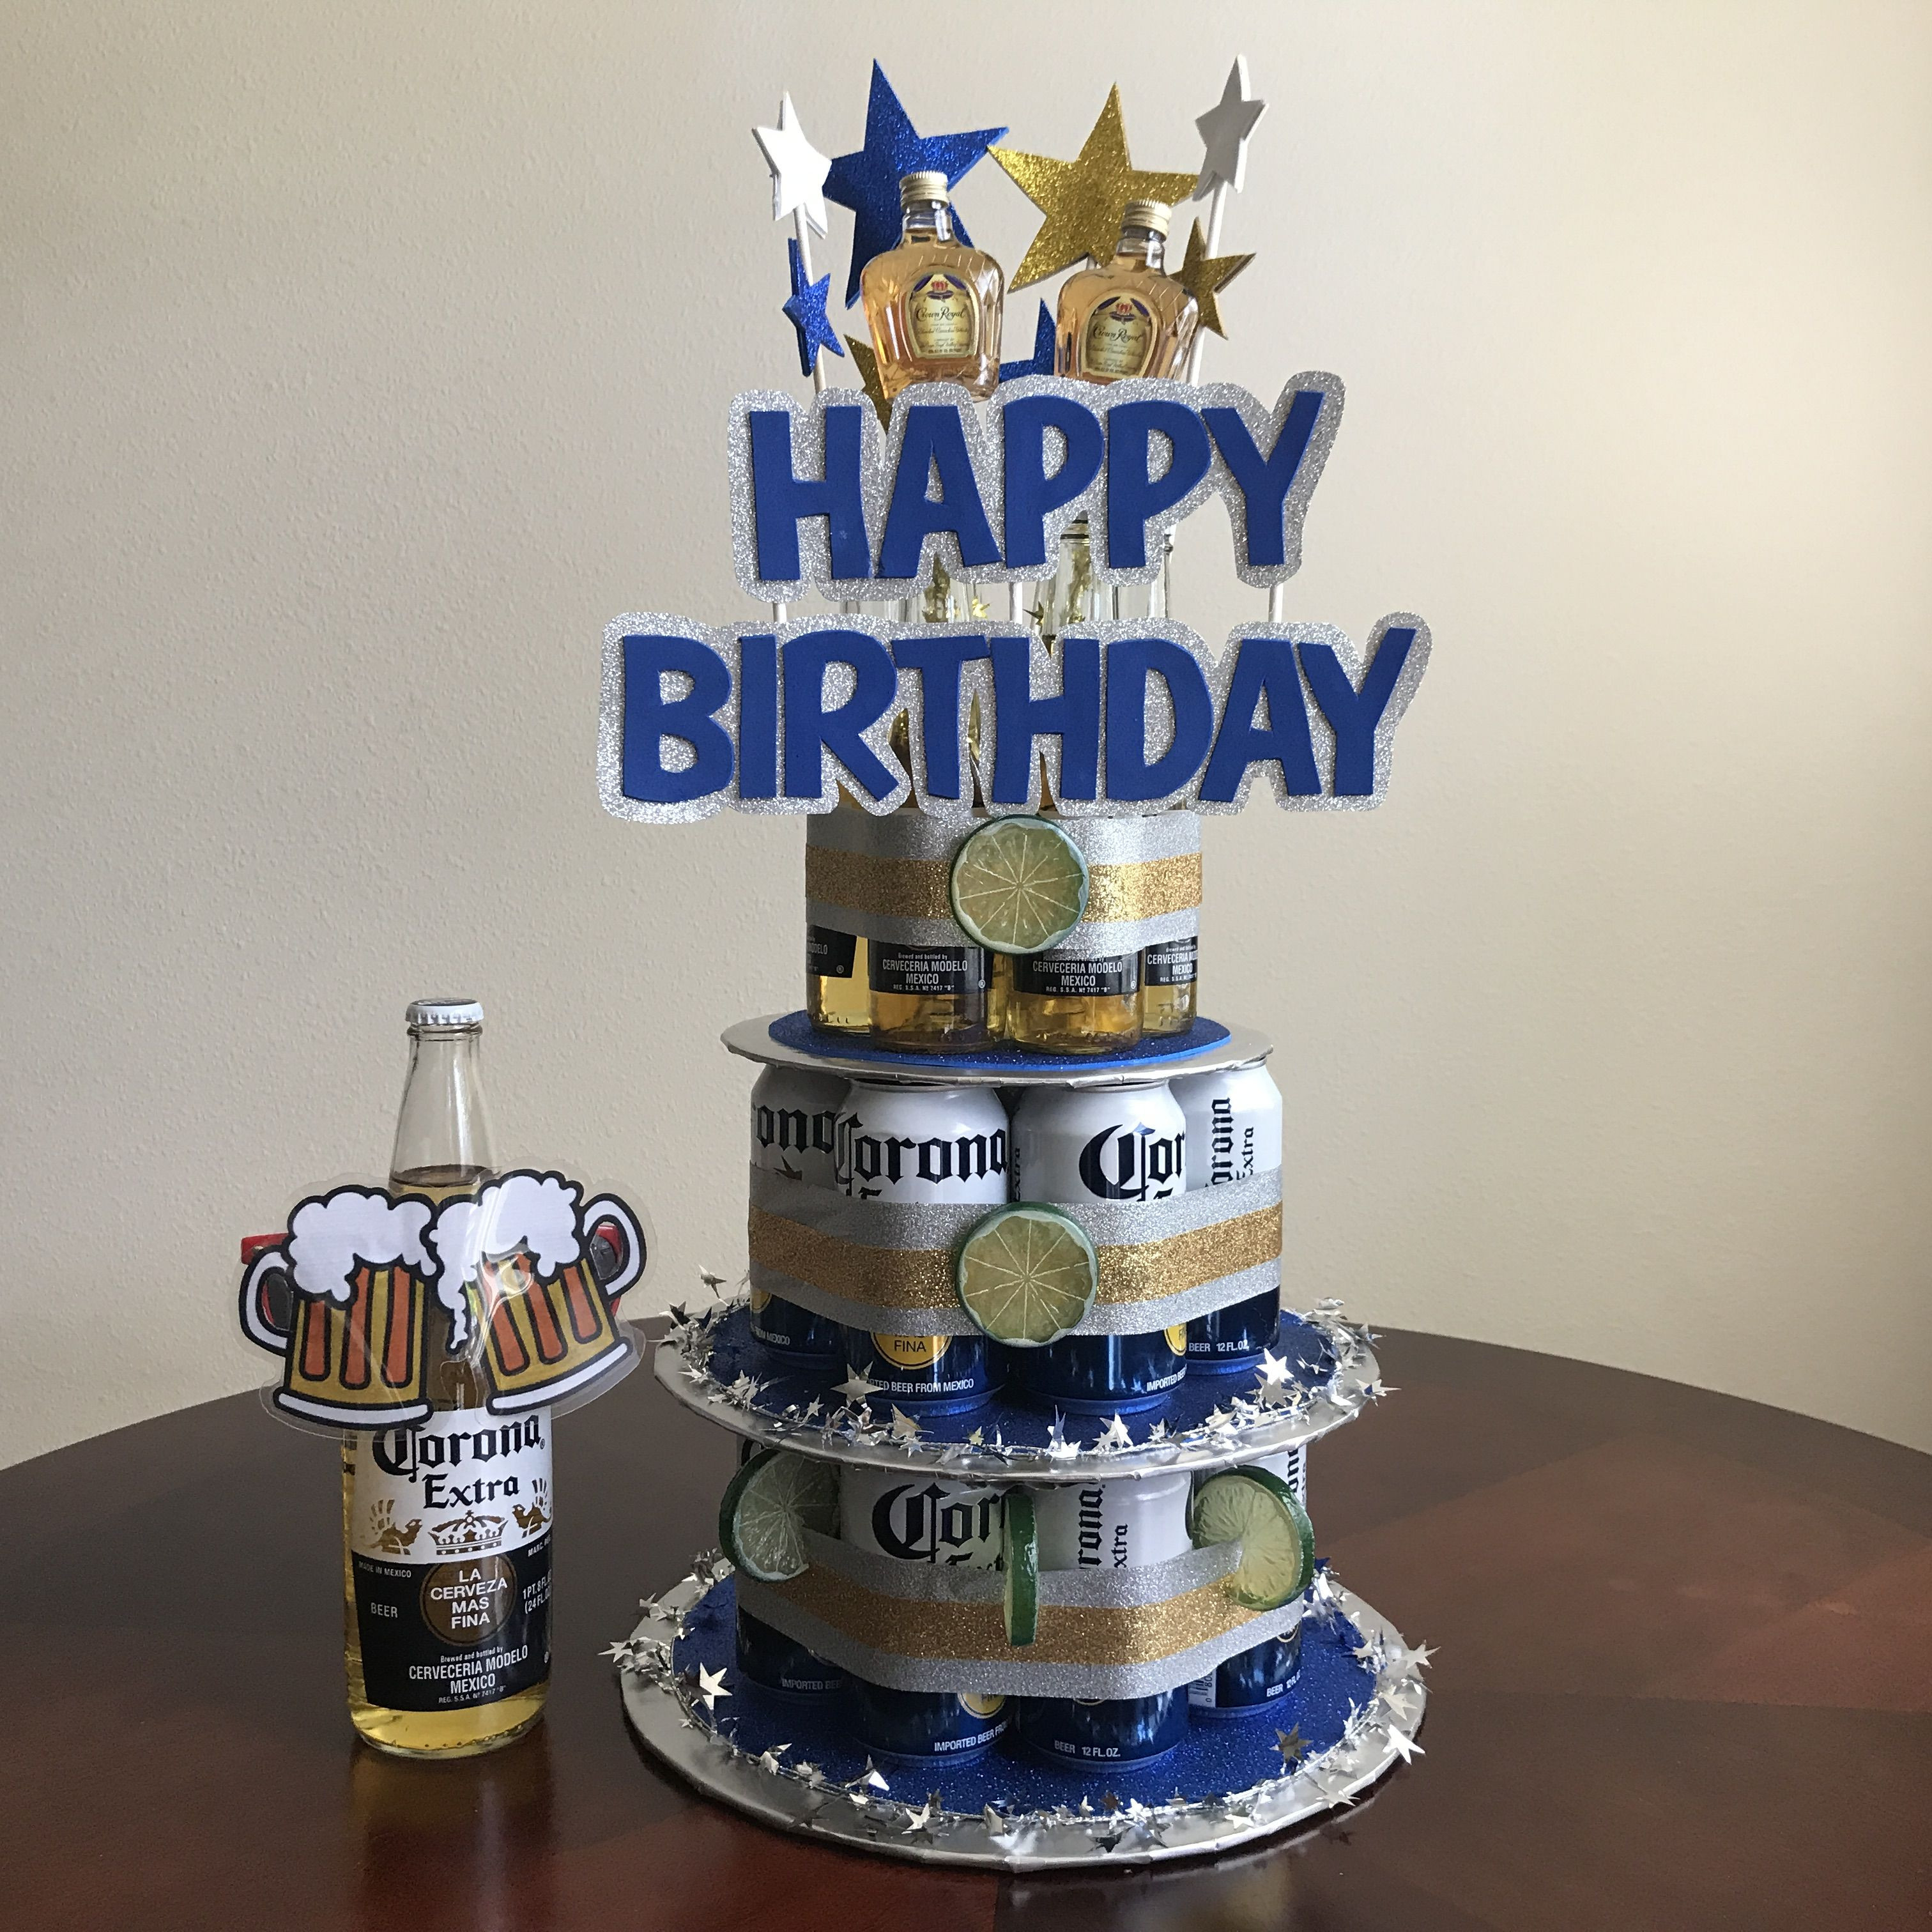 Best ideas about Happy Birthday Beer Cake . Save or Pin Handmade Beer Can Cake for the Man that loves his Corona s Now.